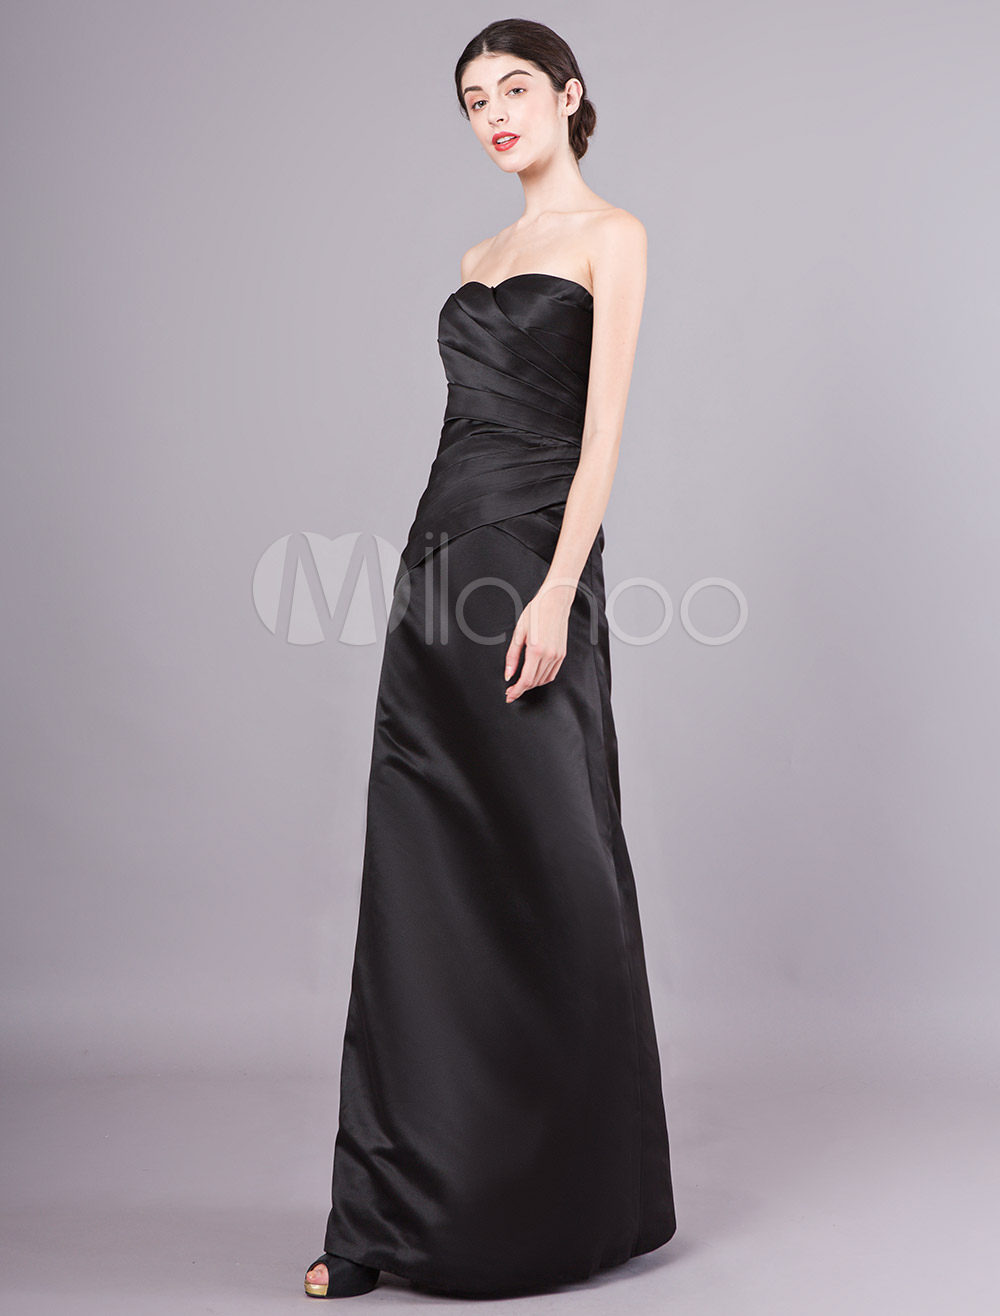 a7c68296e7 Black Strapless Prom Dresses - Data Dynamic AG